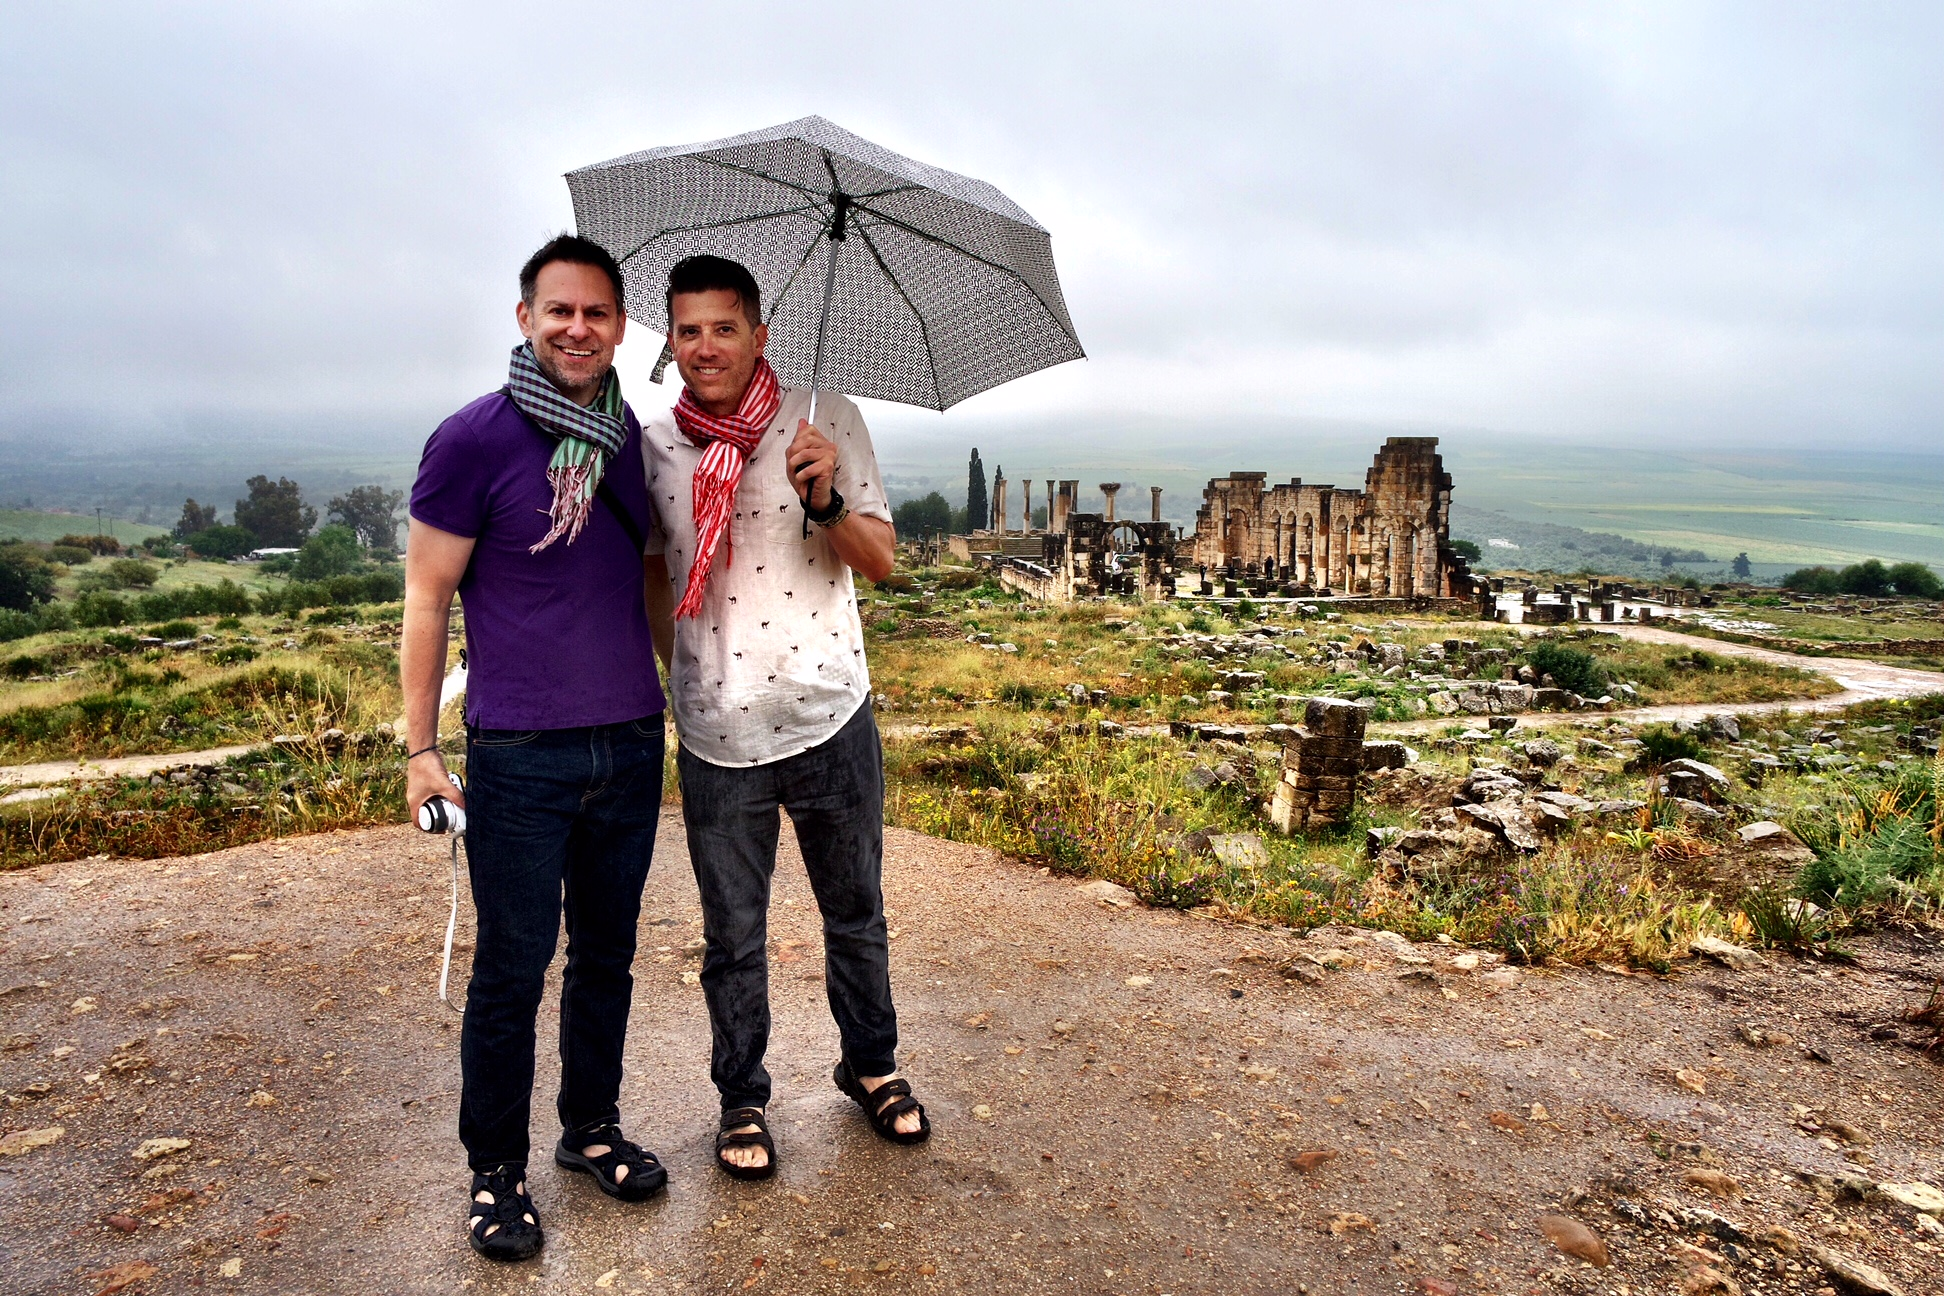 Duke and Wally didn't let a little rain get in the way of an enjoyable trip to Volubilis, Morocco